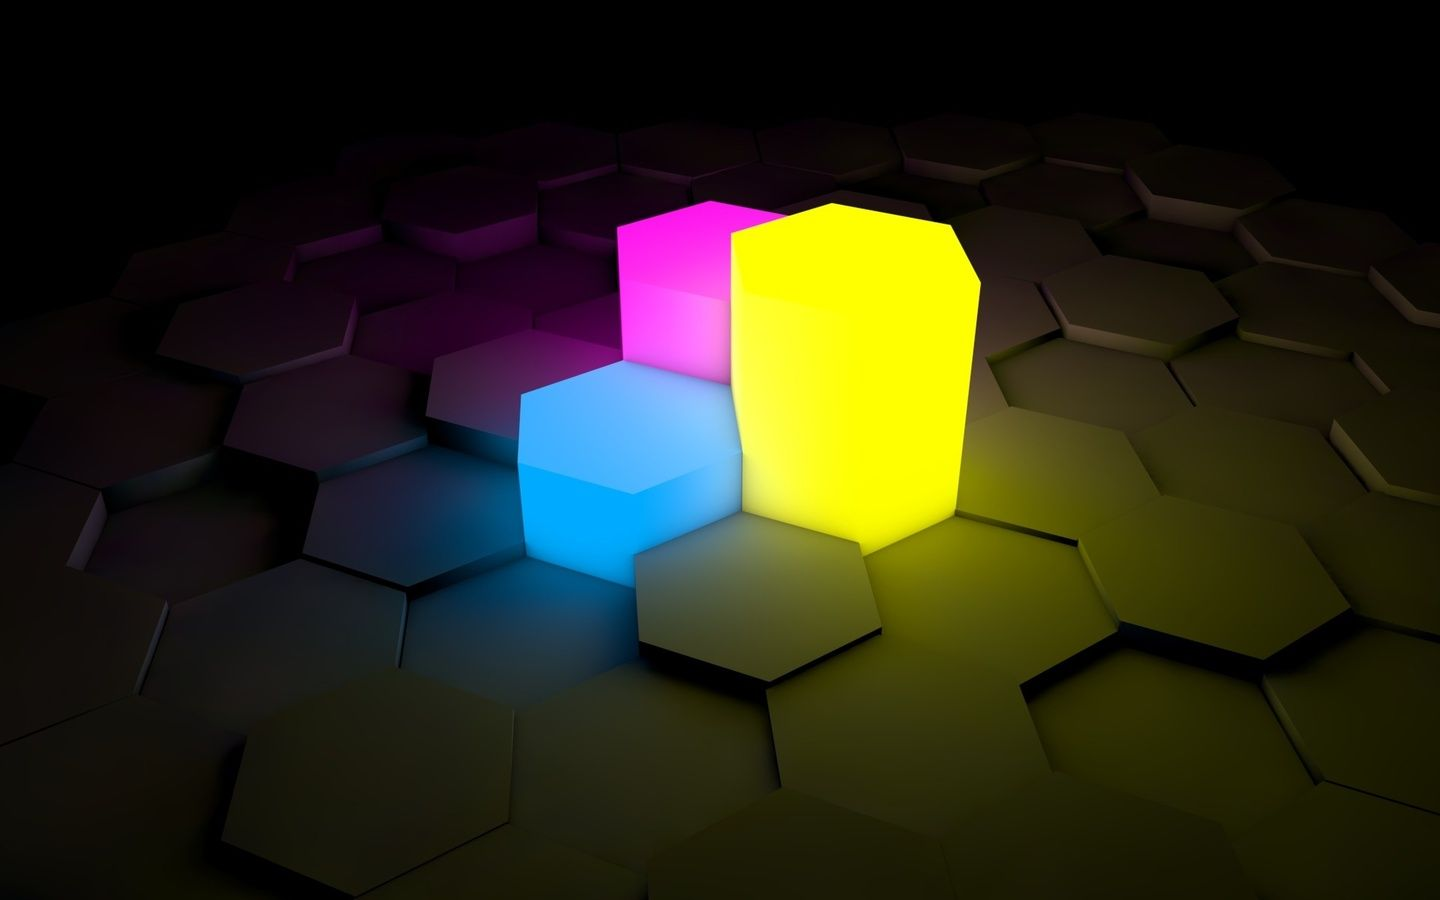 1440x900 Blue Yellow Purple 3d Hex Wallpapers And Pictures Neon Wallpaper Hexagon Wallpaper Wallpaper Pc